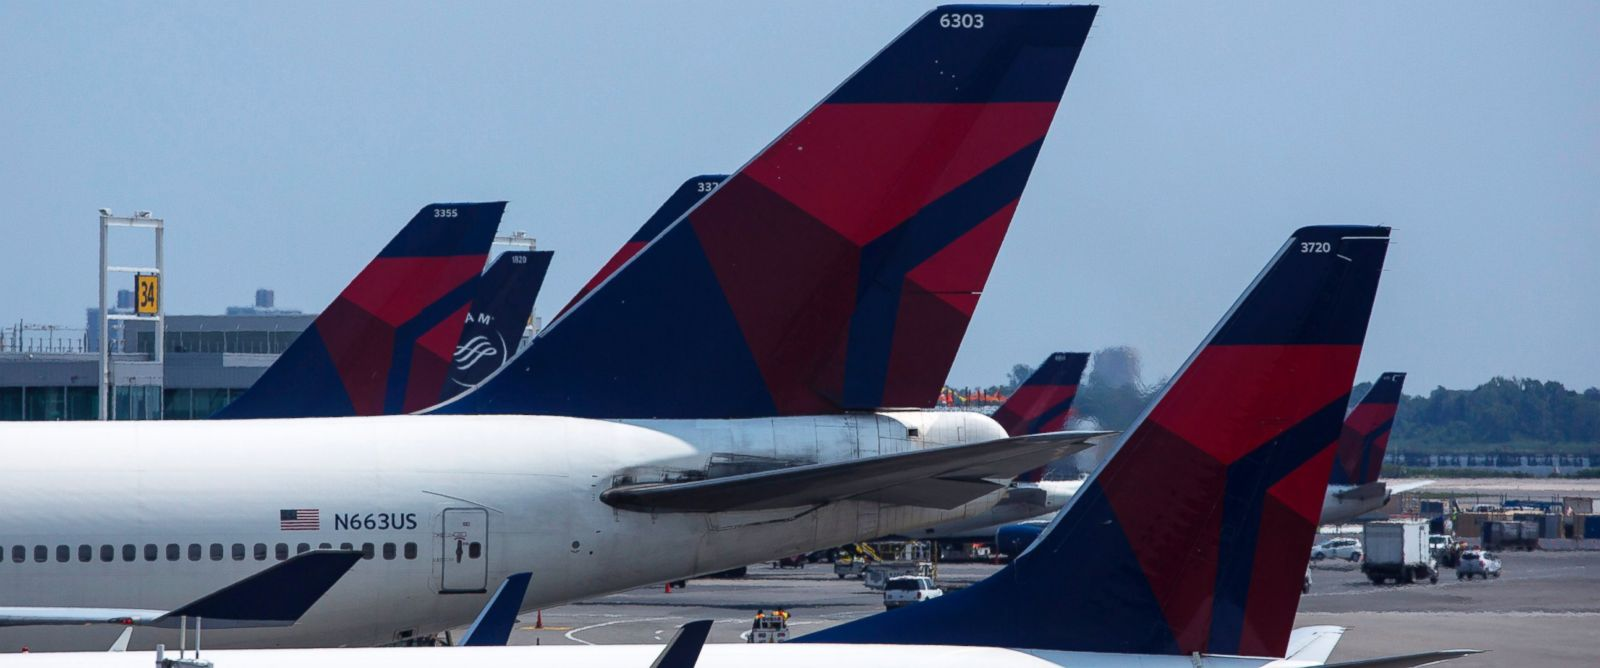 PHOTO: Delta Airlines planes sit at Terminal 4 at John F. Kennedy Airport July 22, 2014 in New York City.